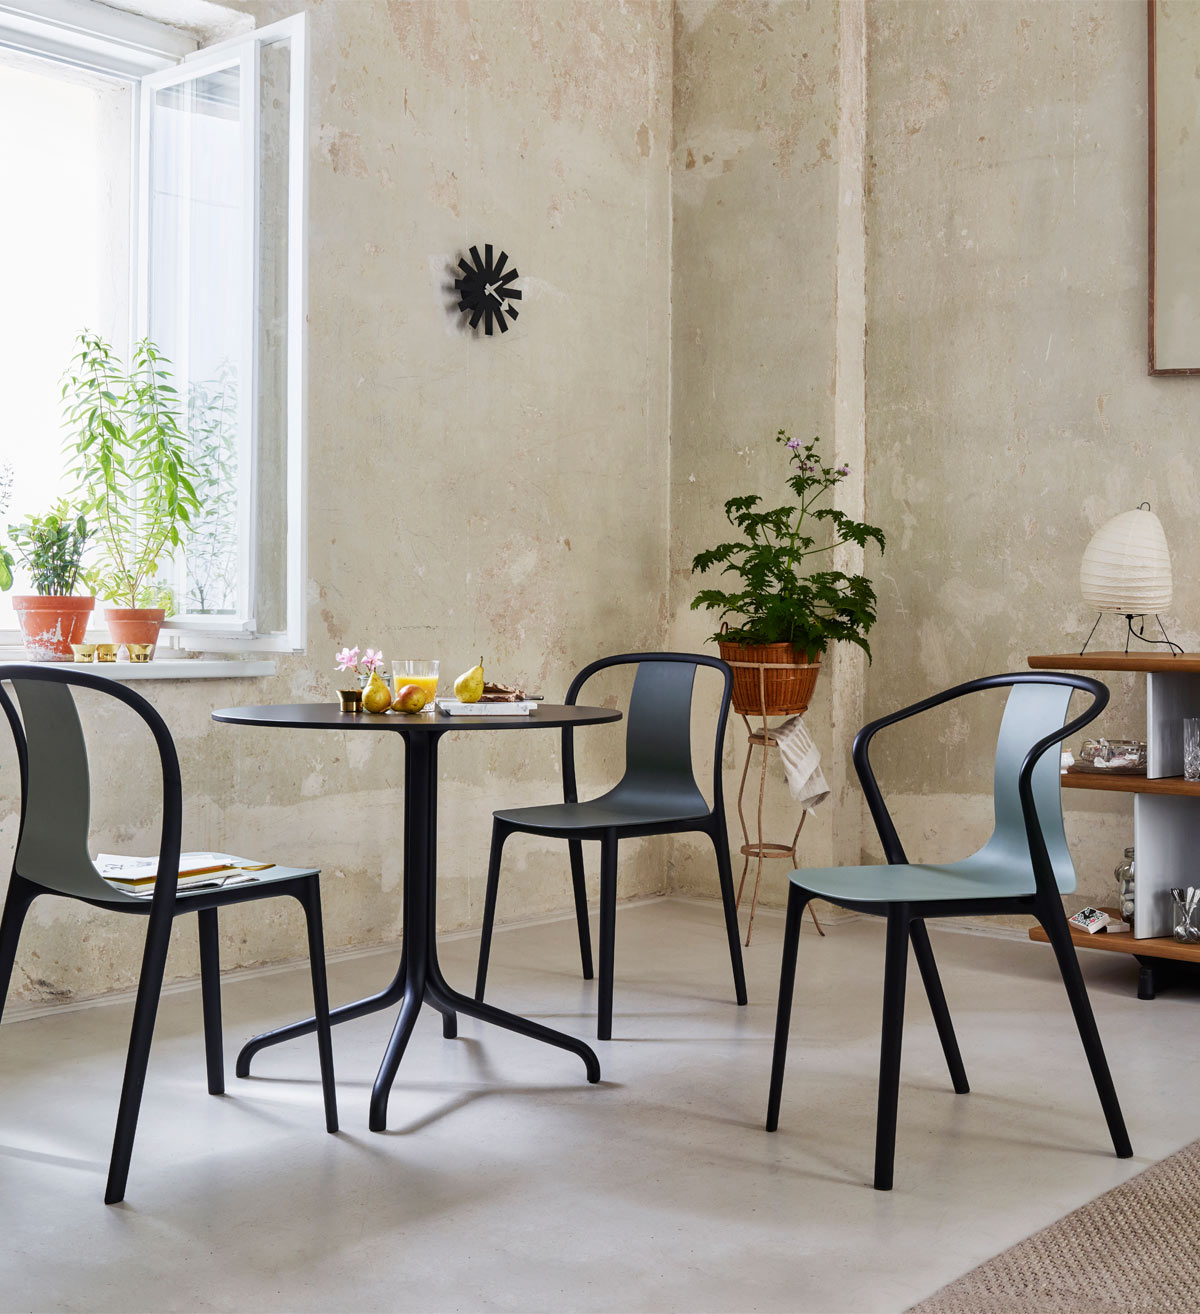 Belleville Chairs and Table set up.jpg